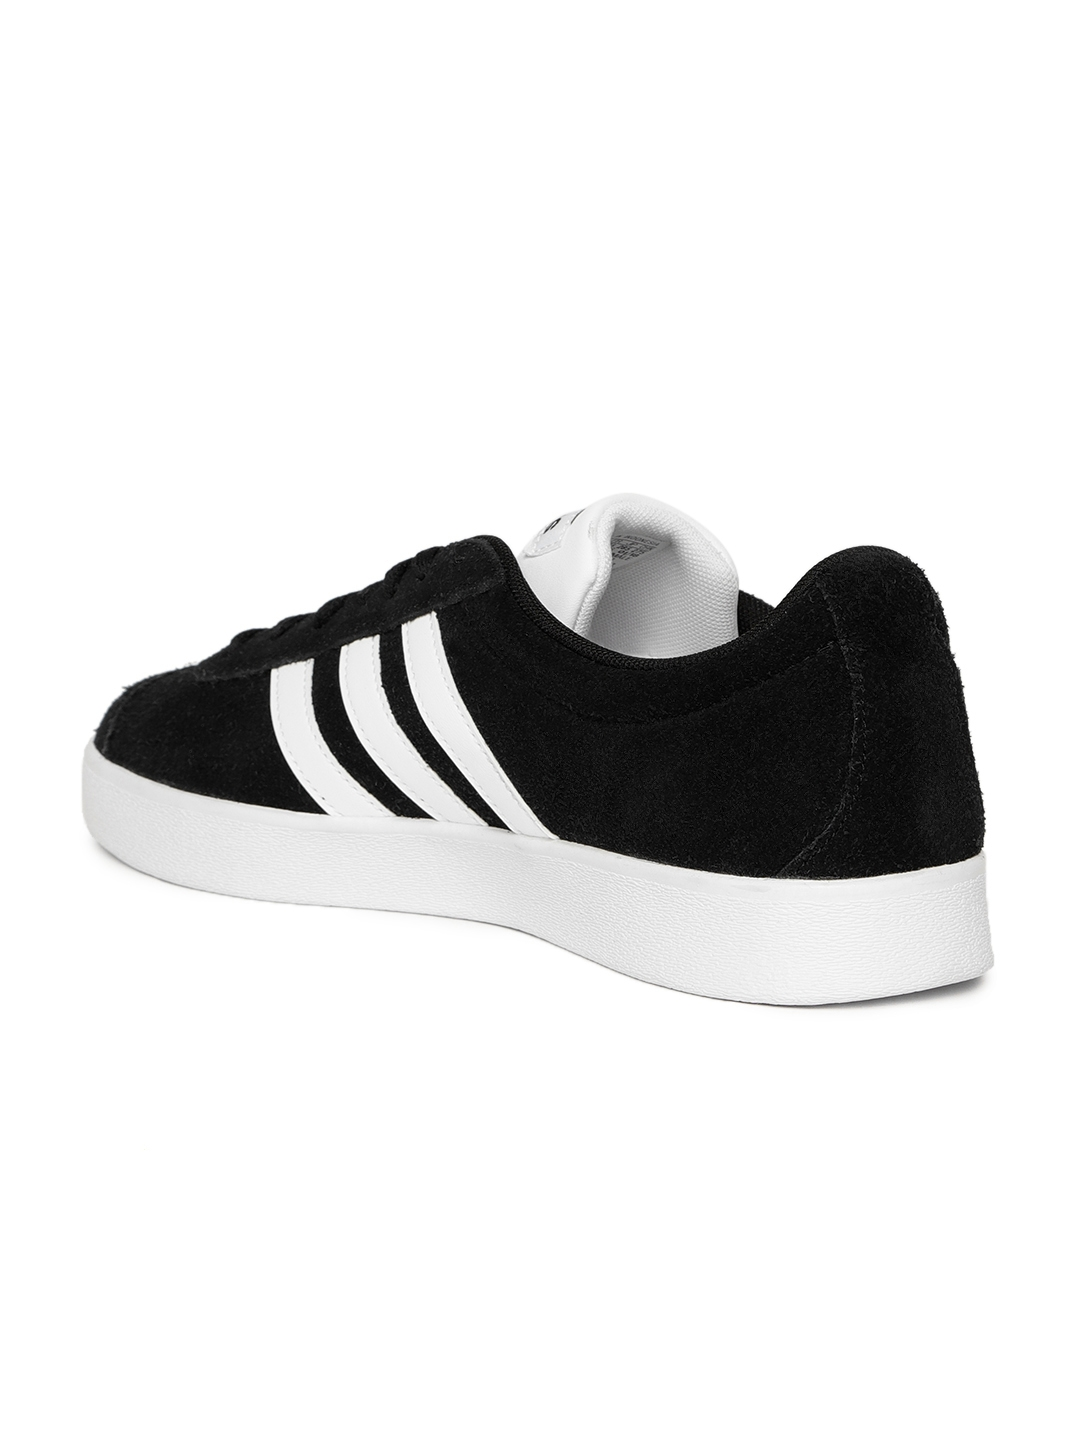 more photos 3908a f4df4 ADIDAS Originals Men Black VL Court 2.0 Skateboarding Shoes